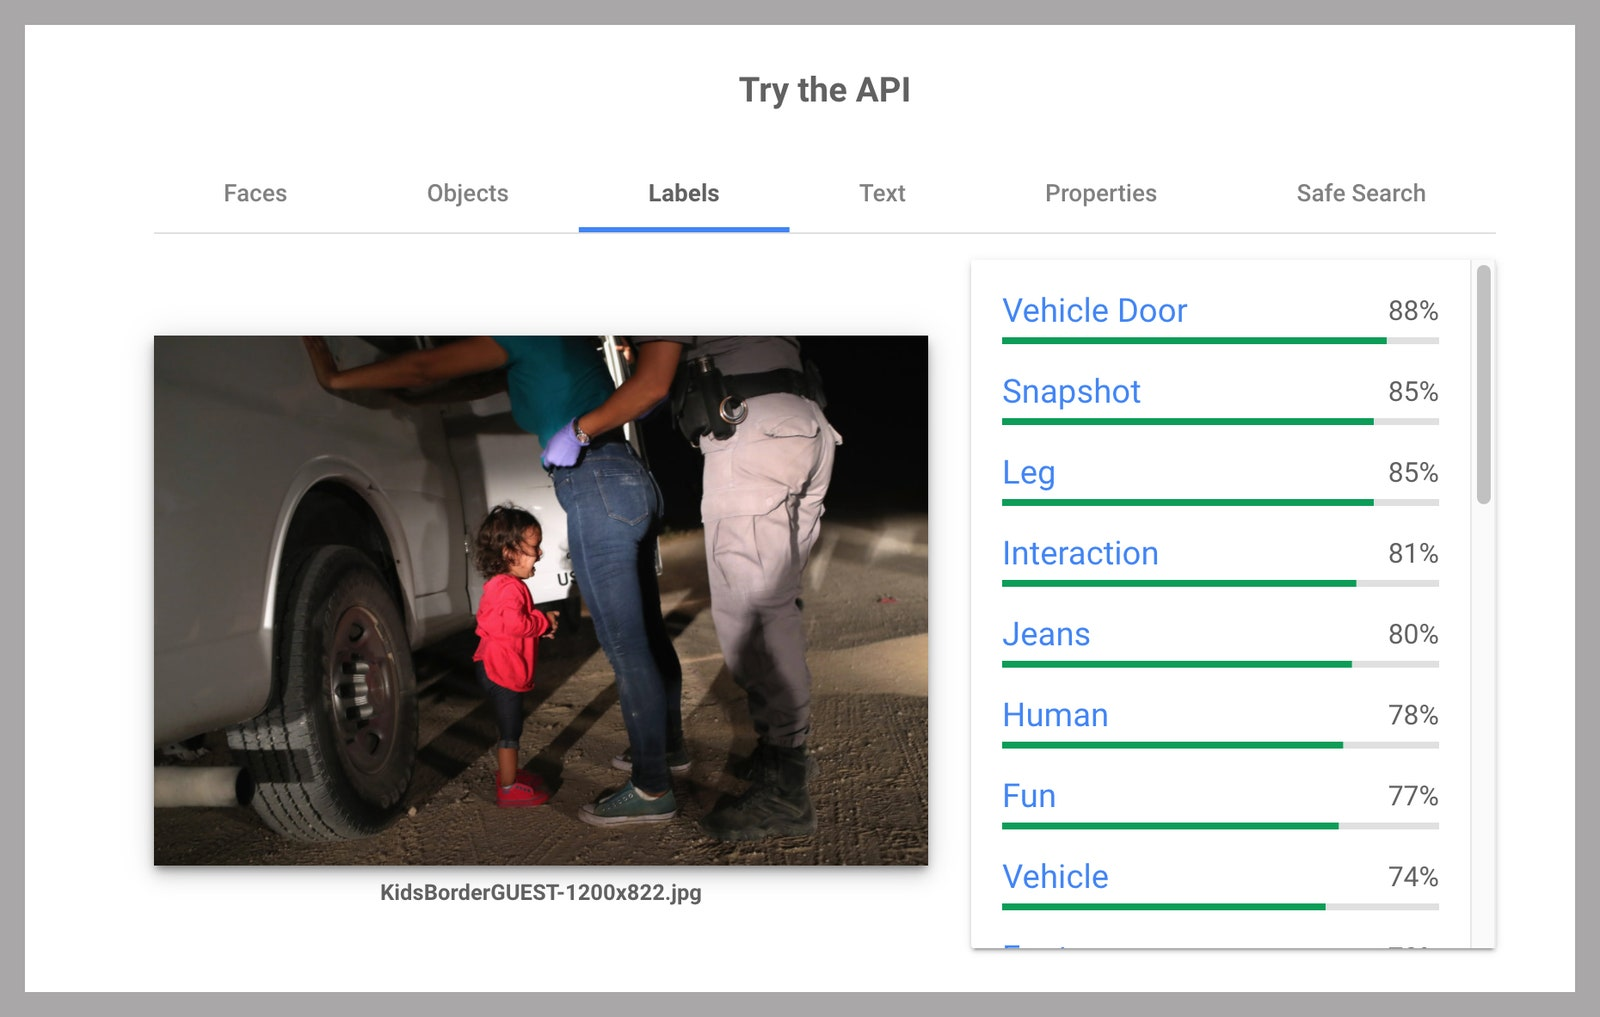 Google API page with description labels and percentages for an image of a child crying next to a truck while an adult is...